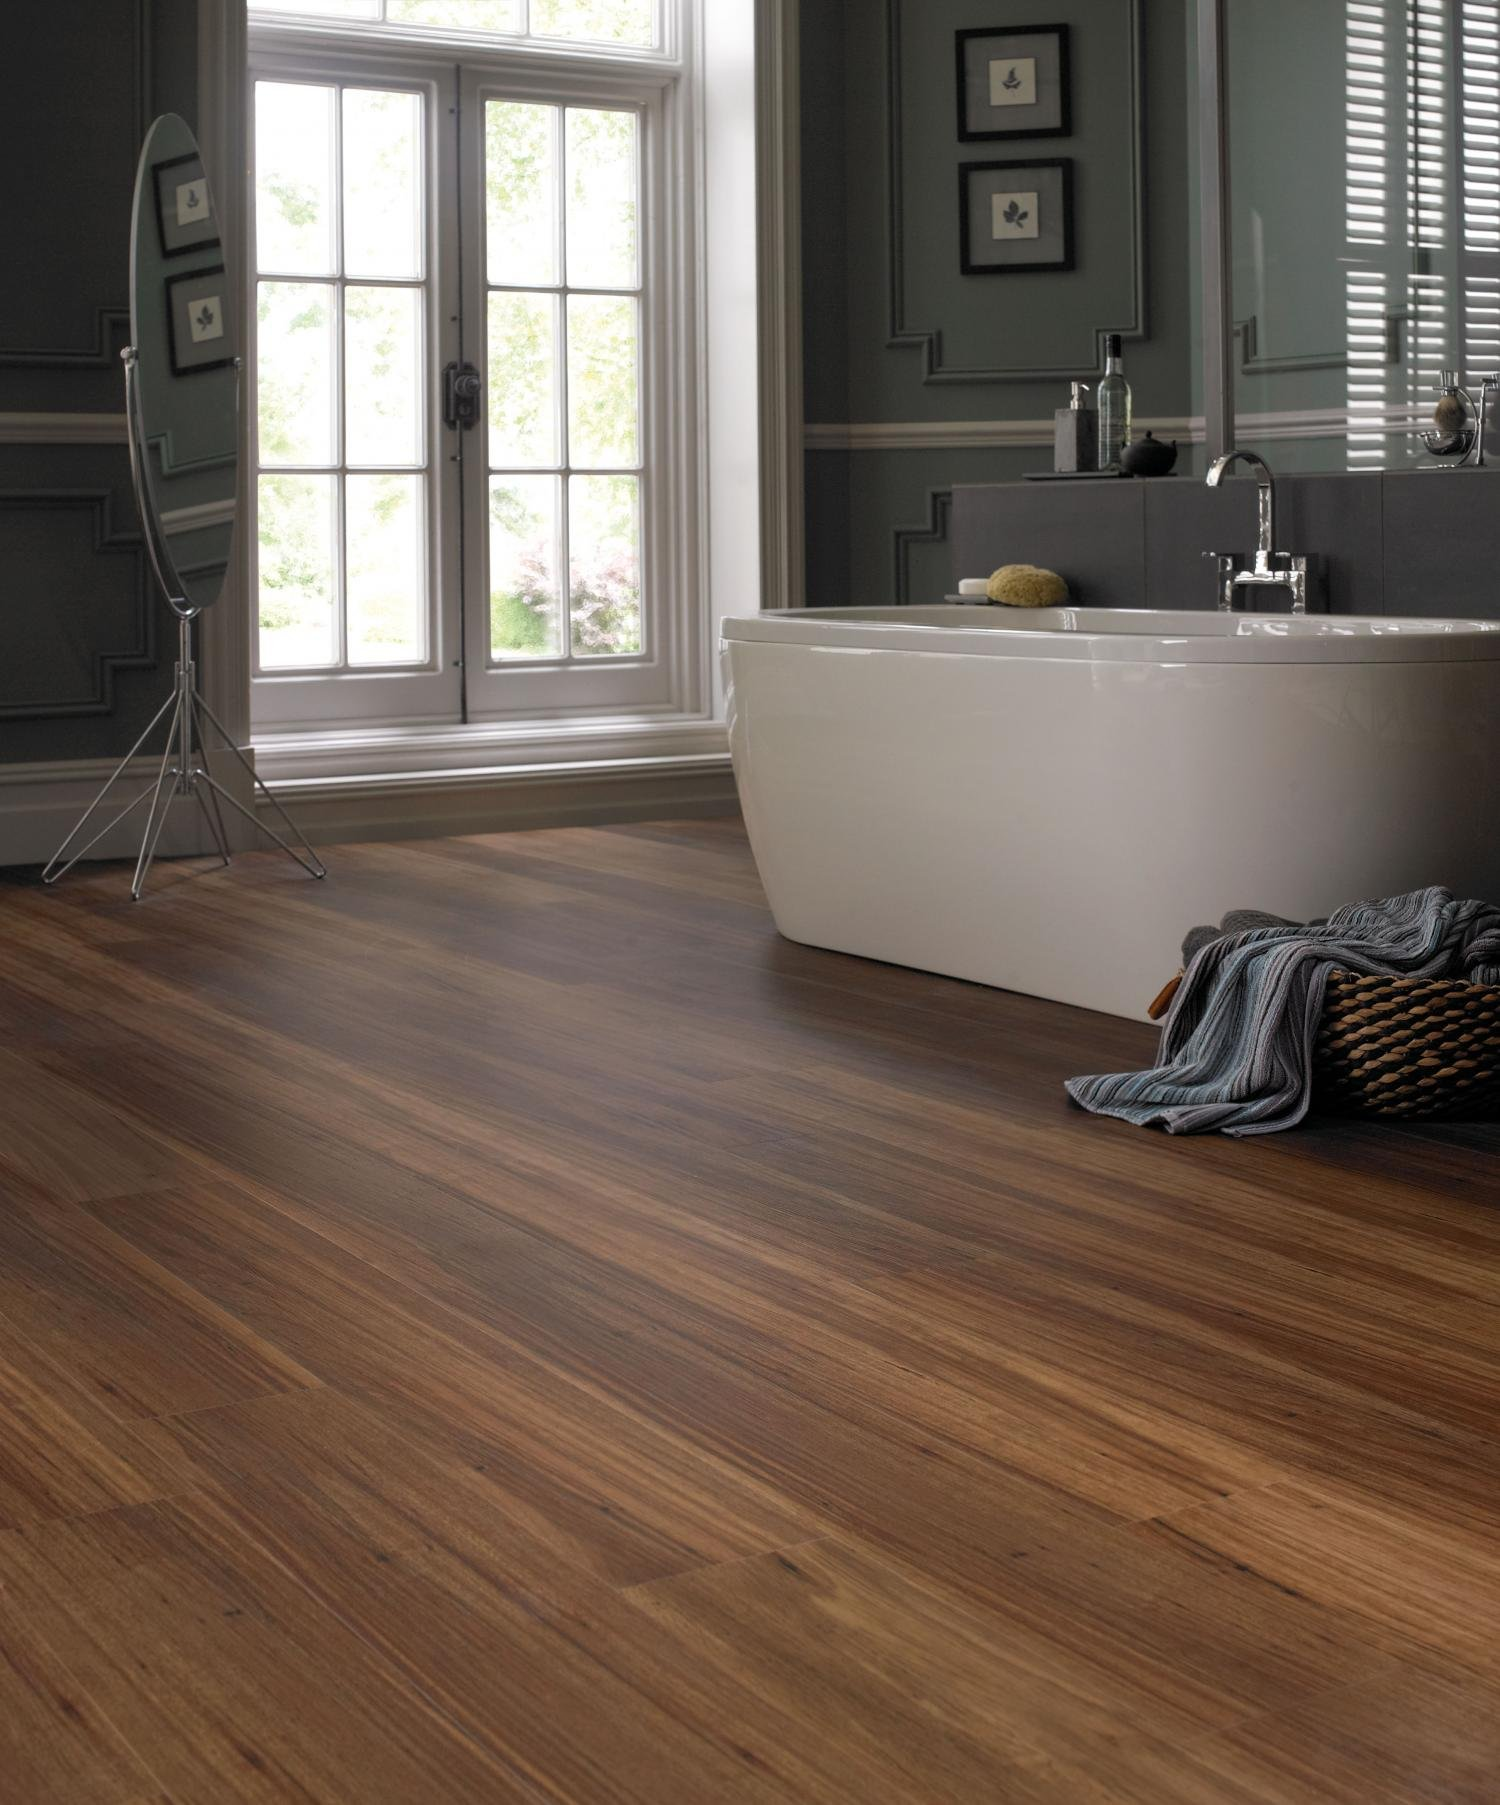 Vinyl Plank Flooring Reviews Laminate Wood Flooring Trends From Armstrong